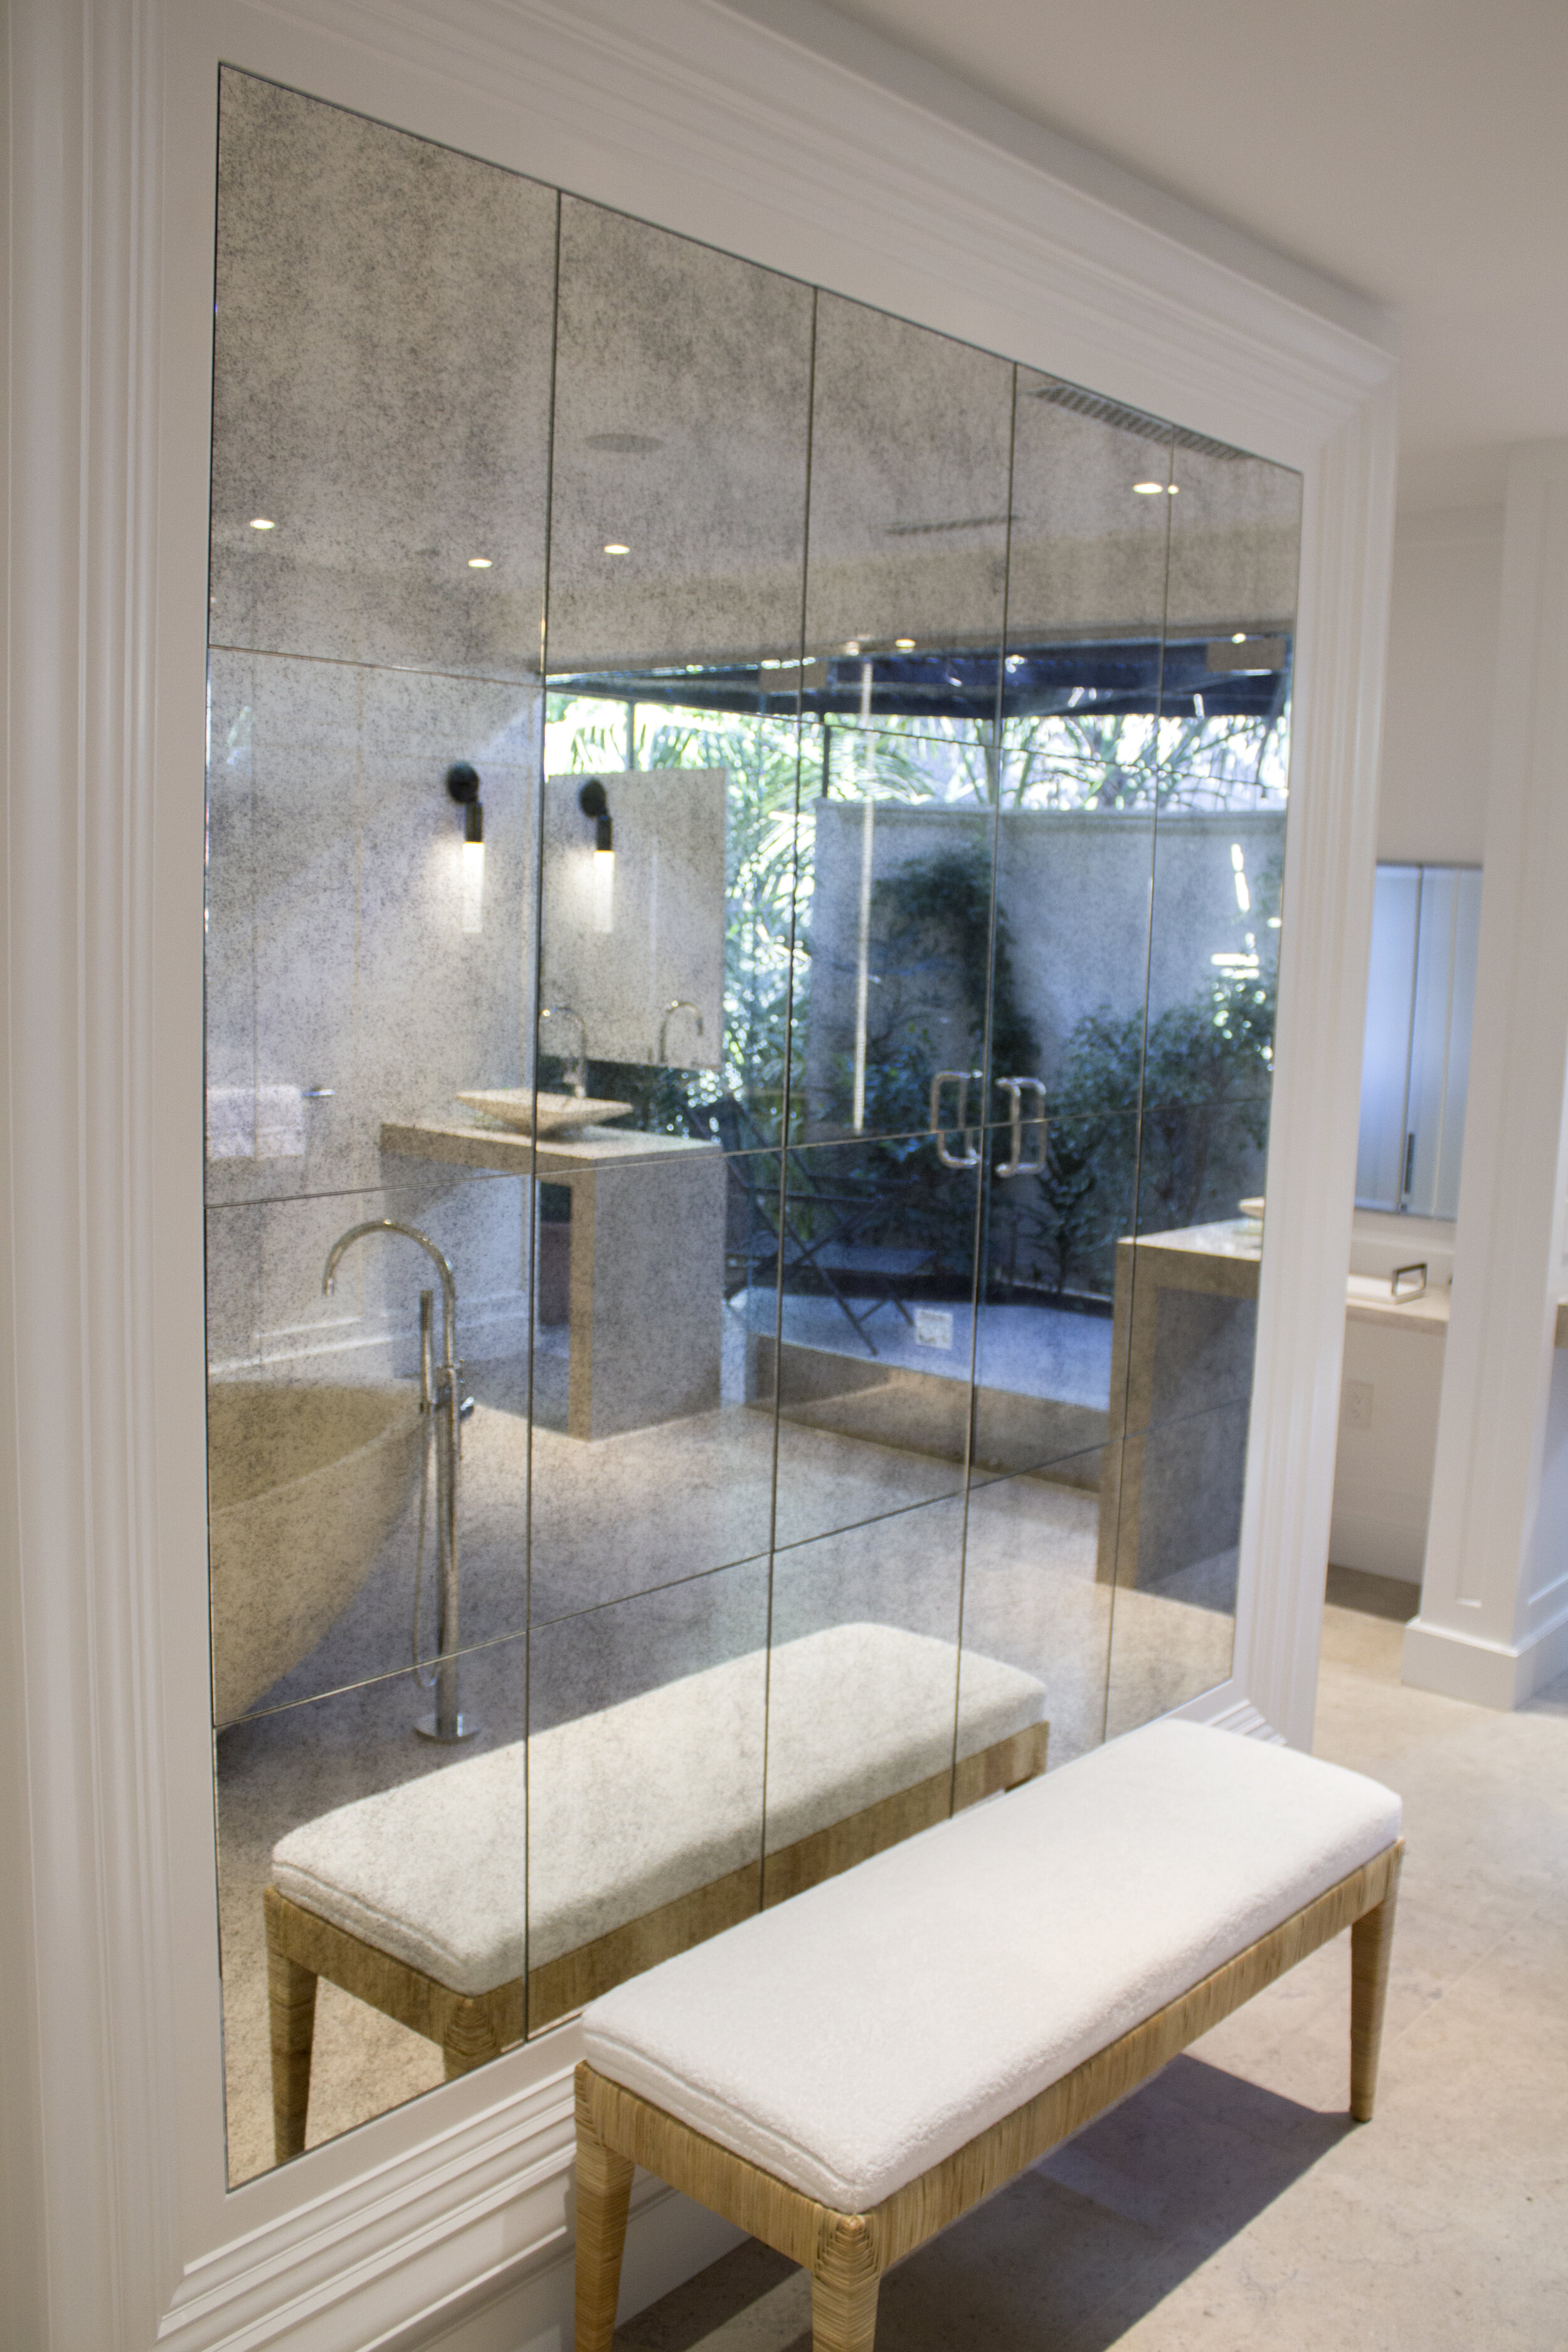 Uncluttered, minimalist bathroom design. Large mirror tiles creating the feeling of a much bigger space.